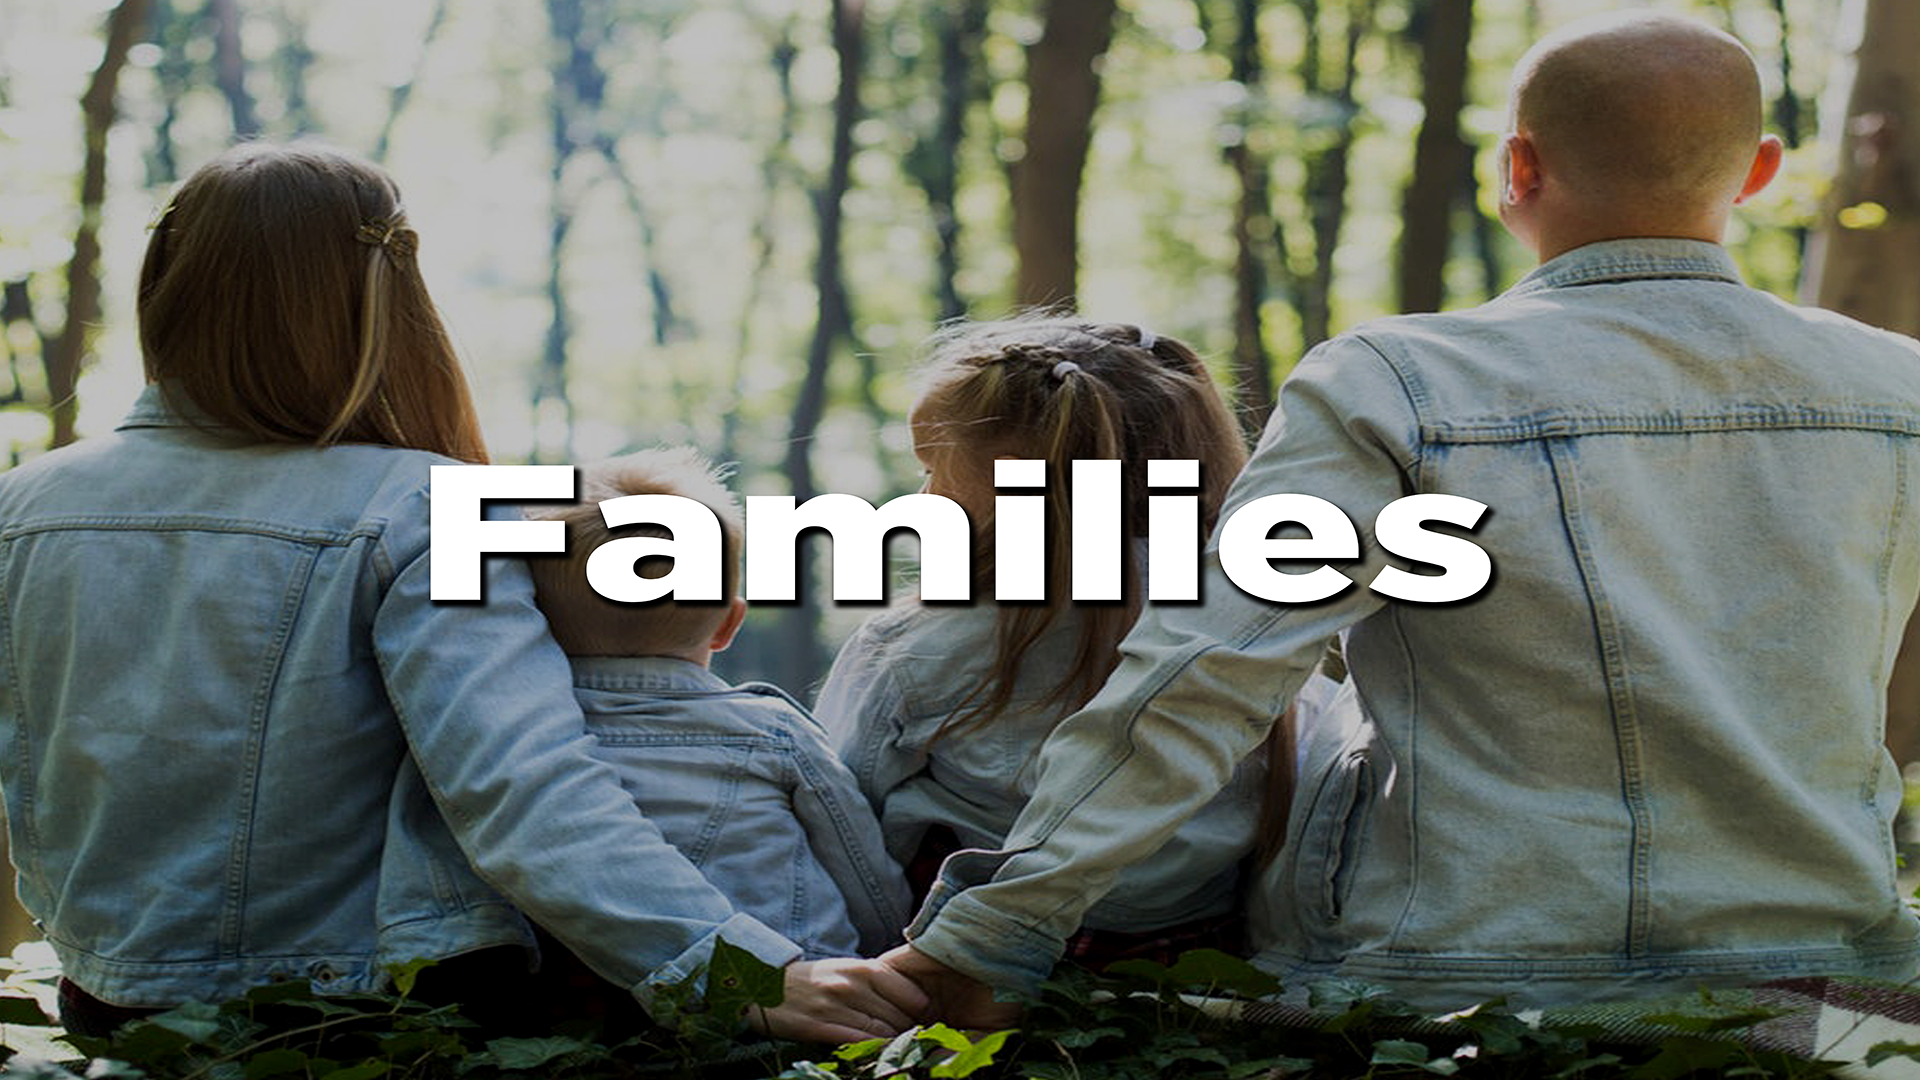 Families TV Size 1920x1080.png